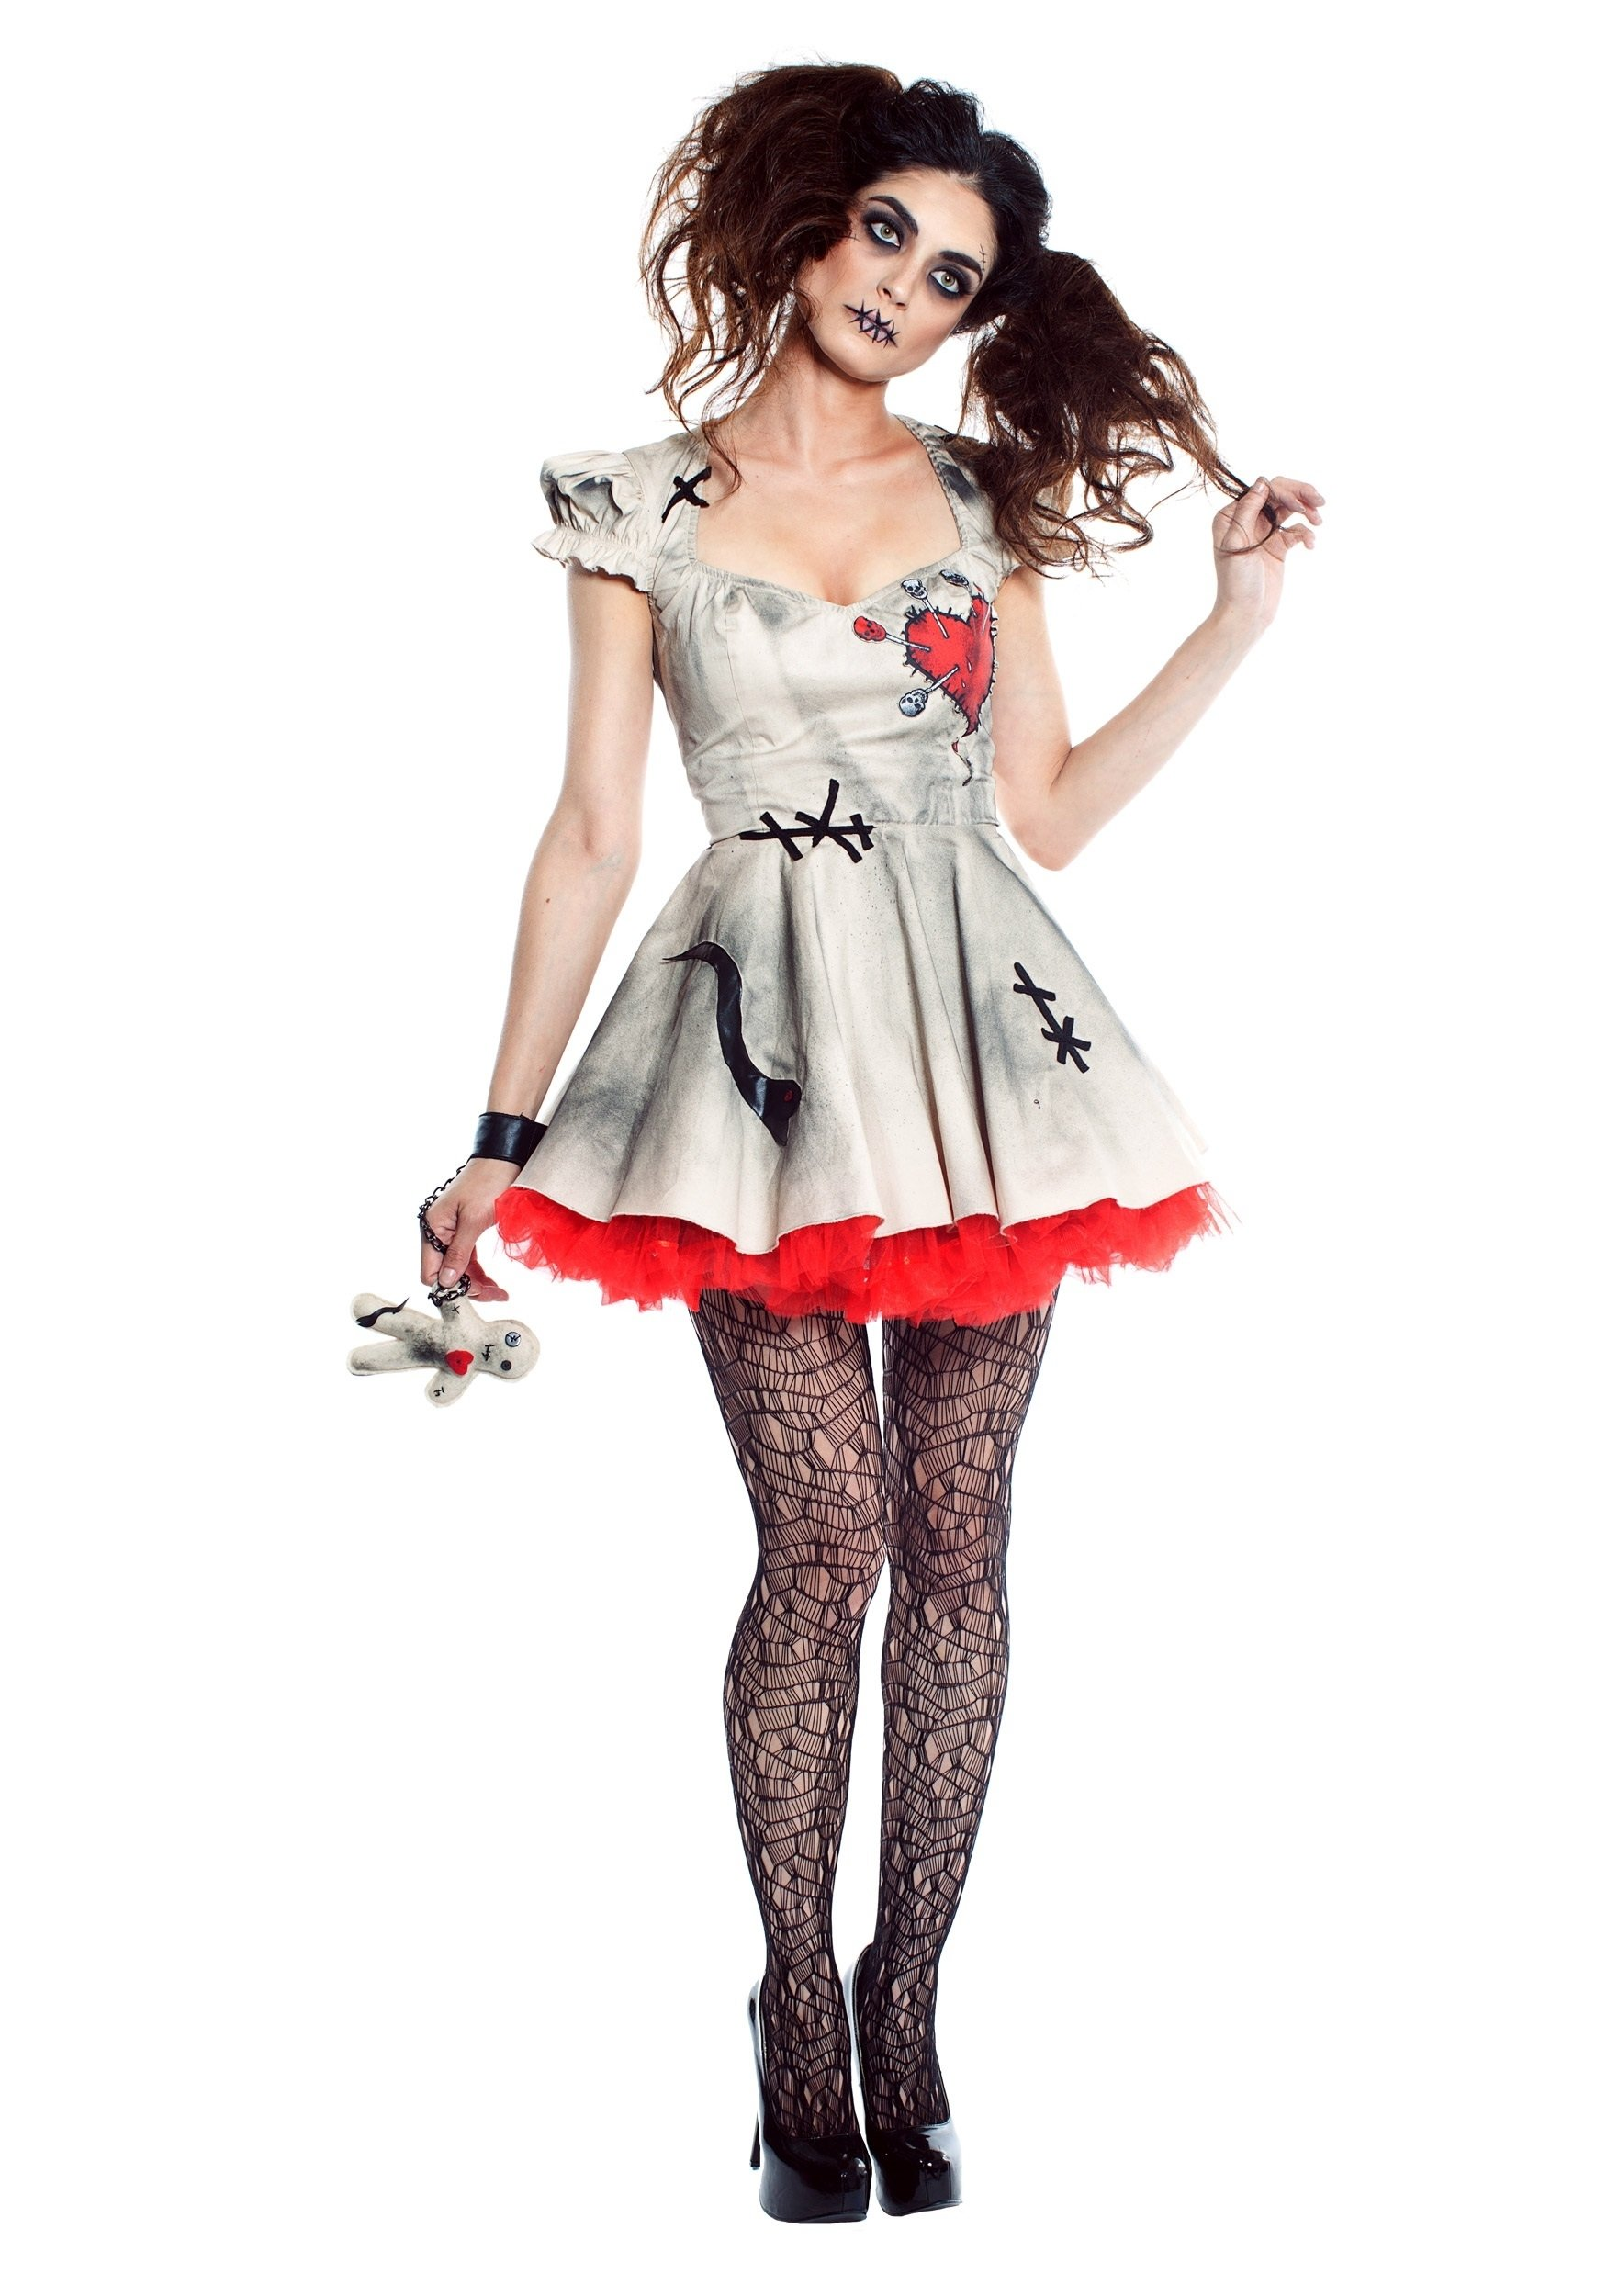 10 Spectacular Scary Halloween Costume Ideas For Women womens voodoo doll costume 2 2020